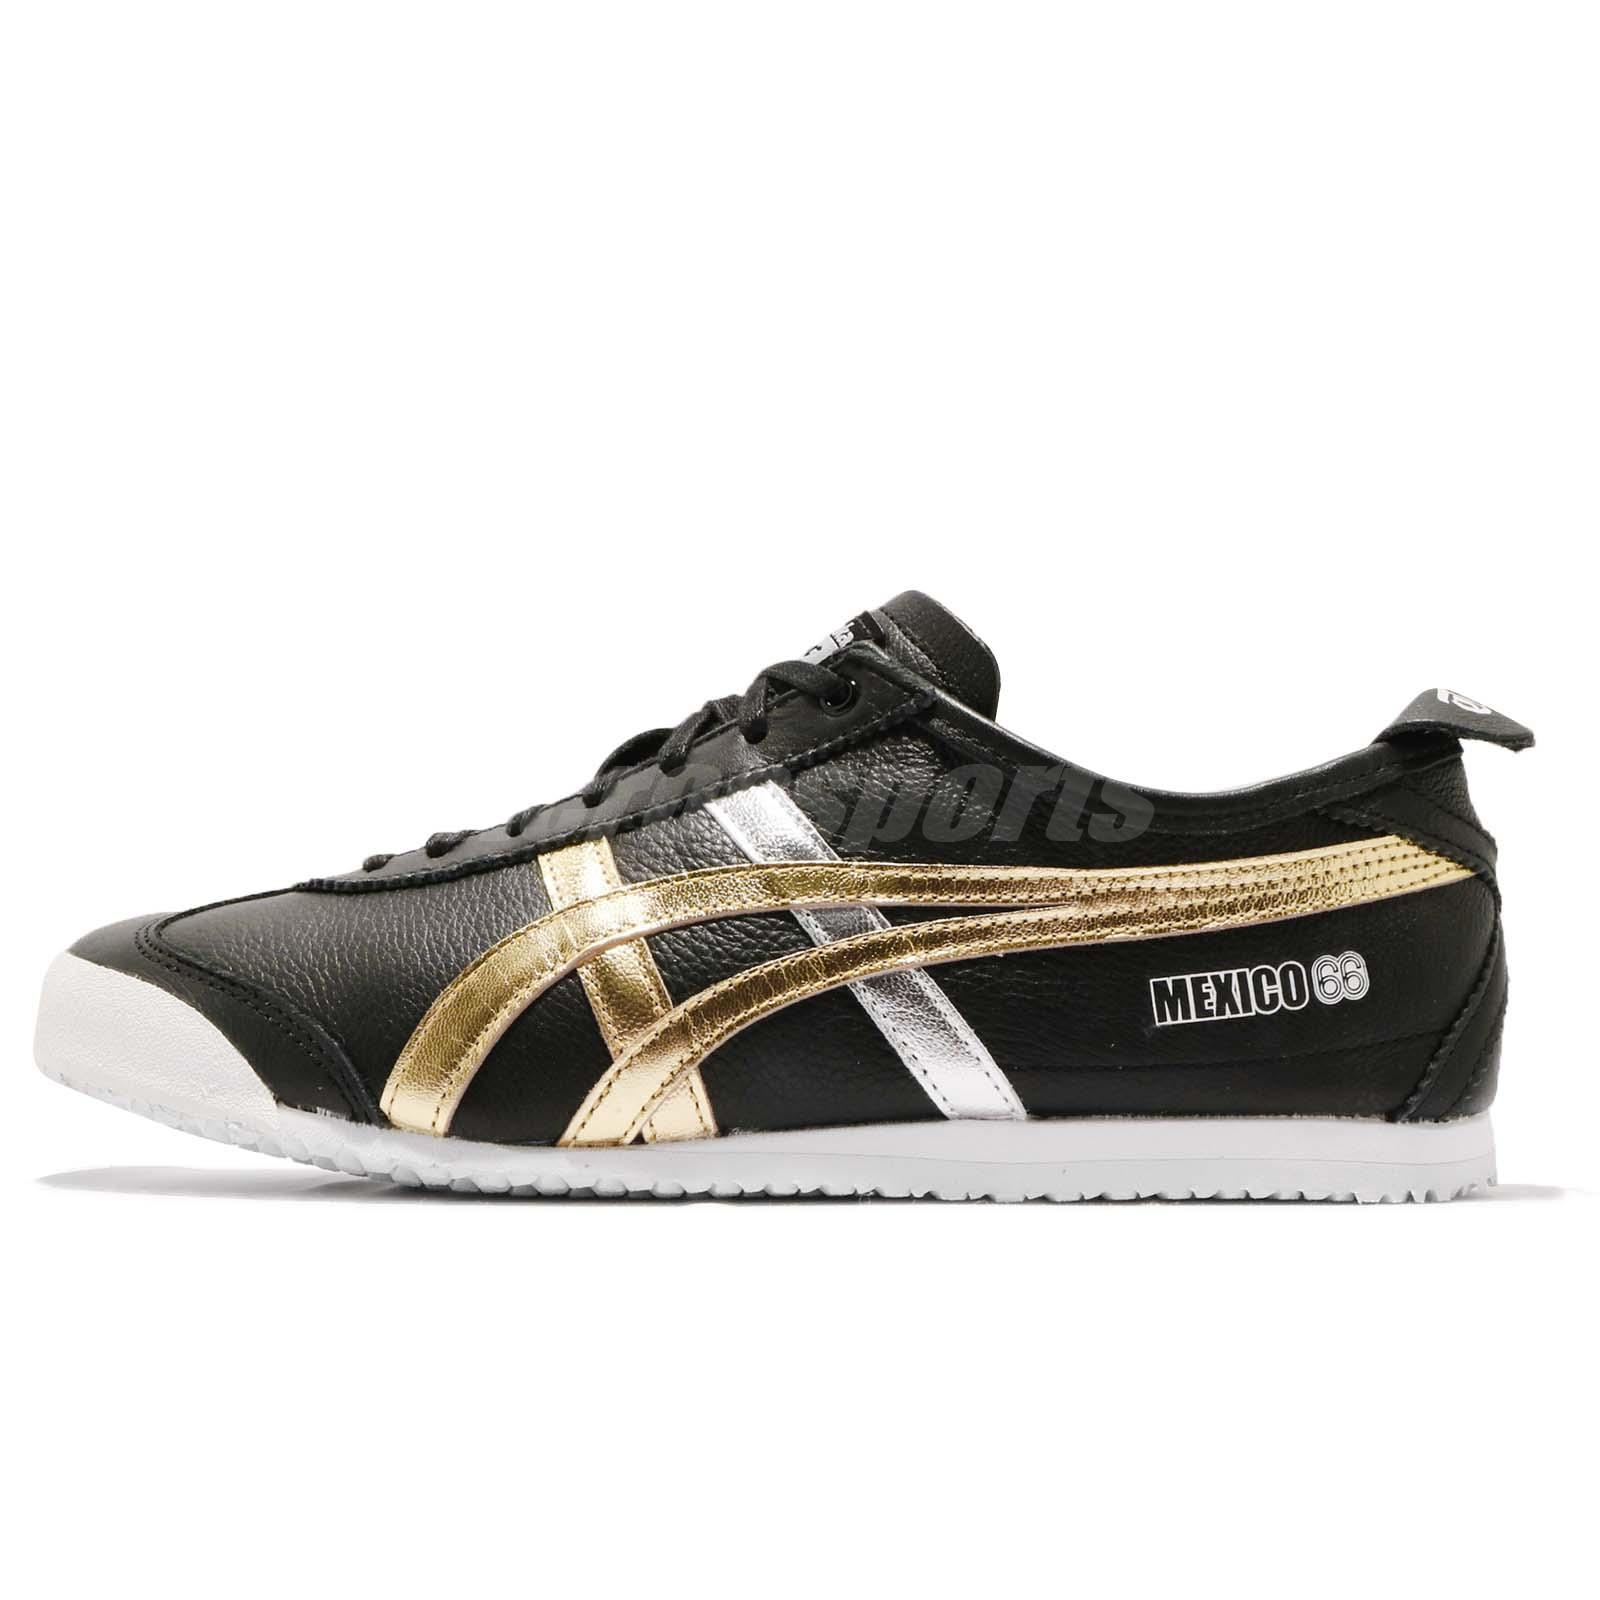 Details about Asics Onitsuka Tiger Mexico 66 Black Gold Men Running Shoes Sneakers D5V2L-9094